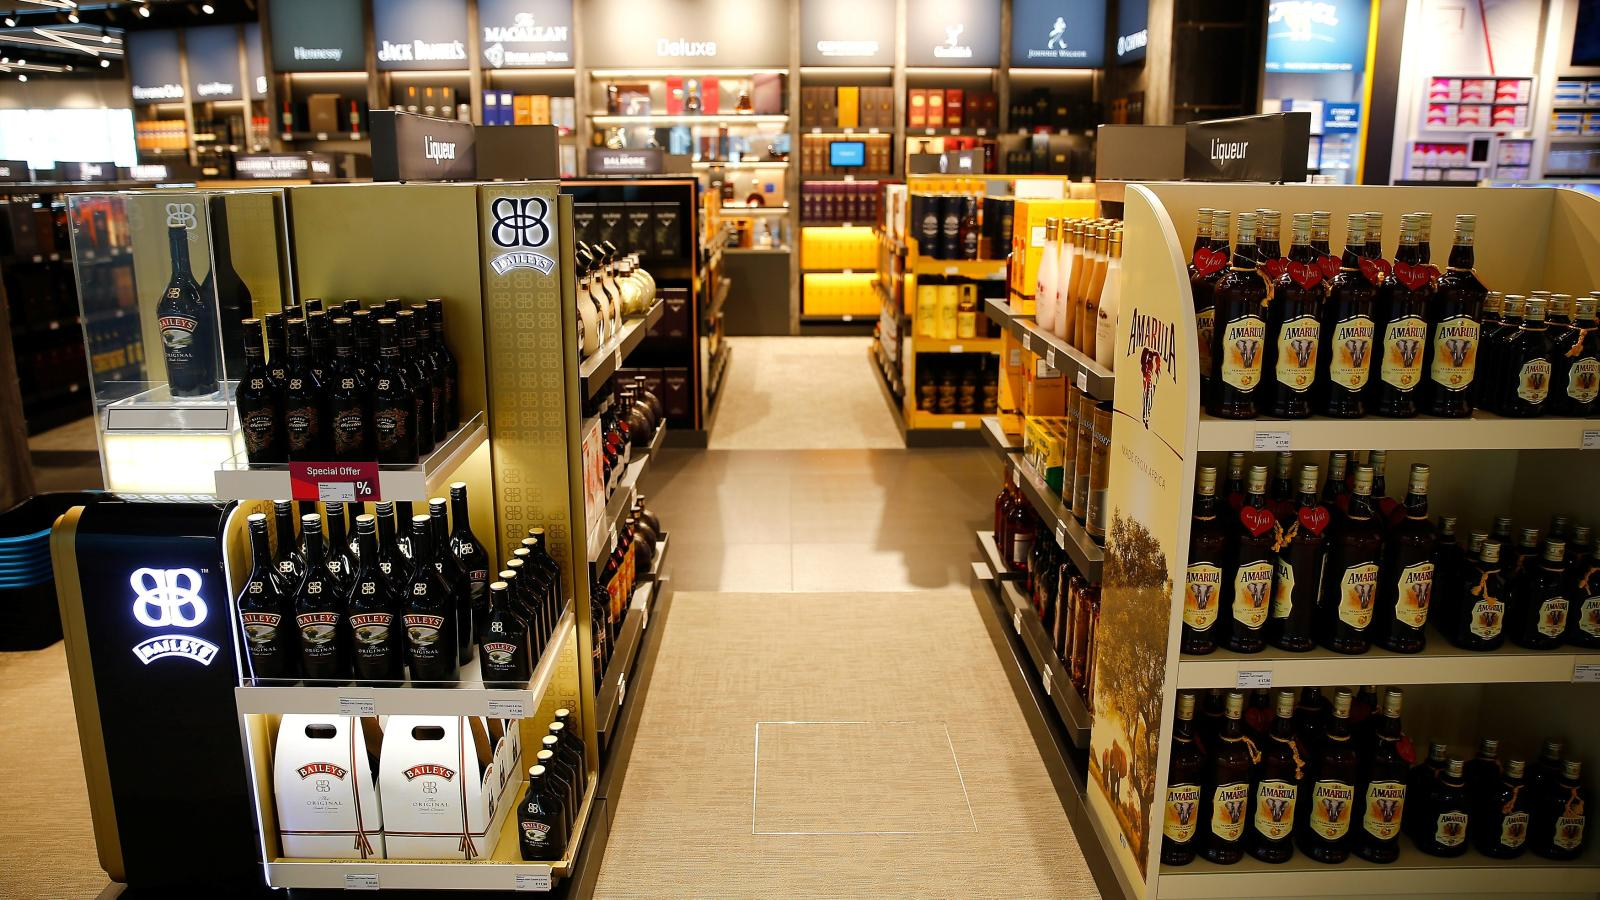 In India S 200 Million Duty Free Market Four In Five Travelers Shop For Alcohol Quartz India